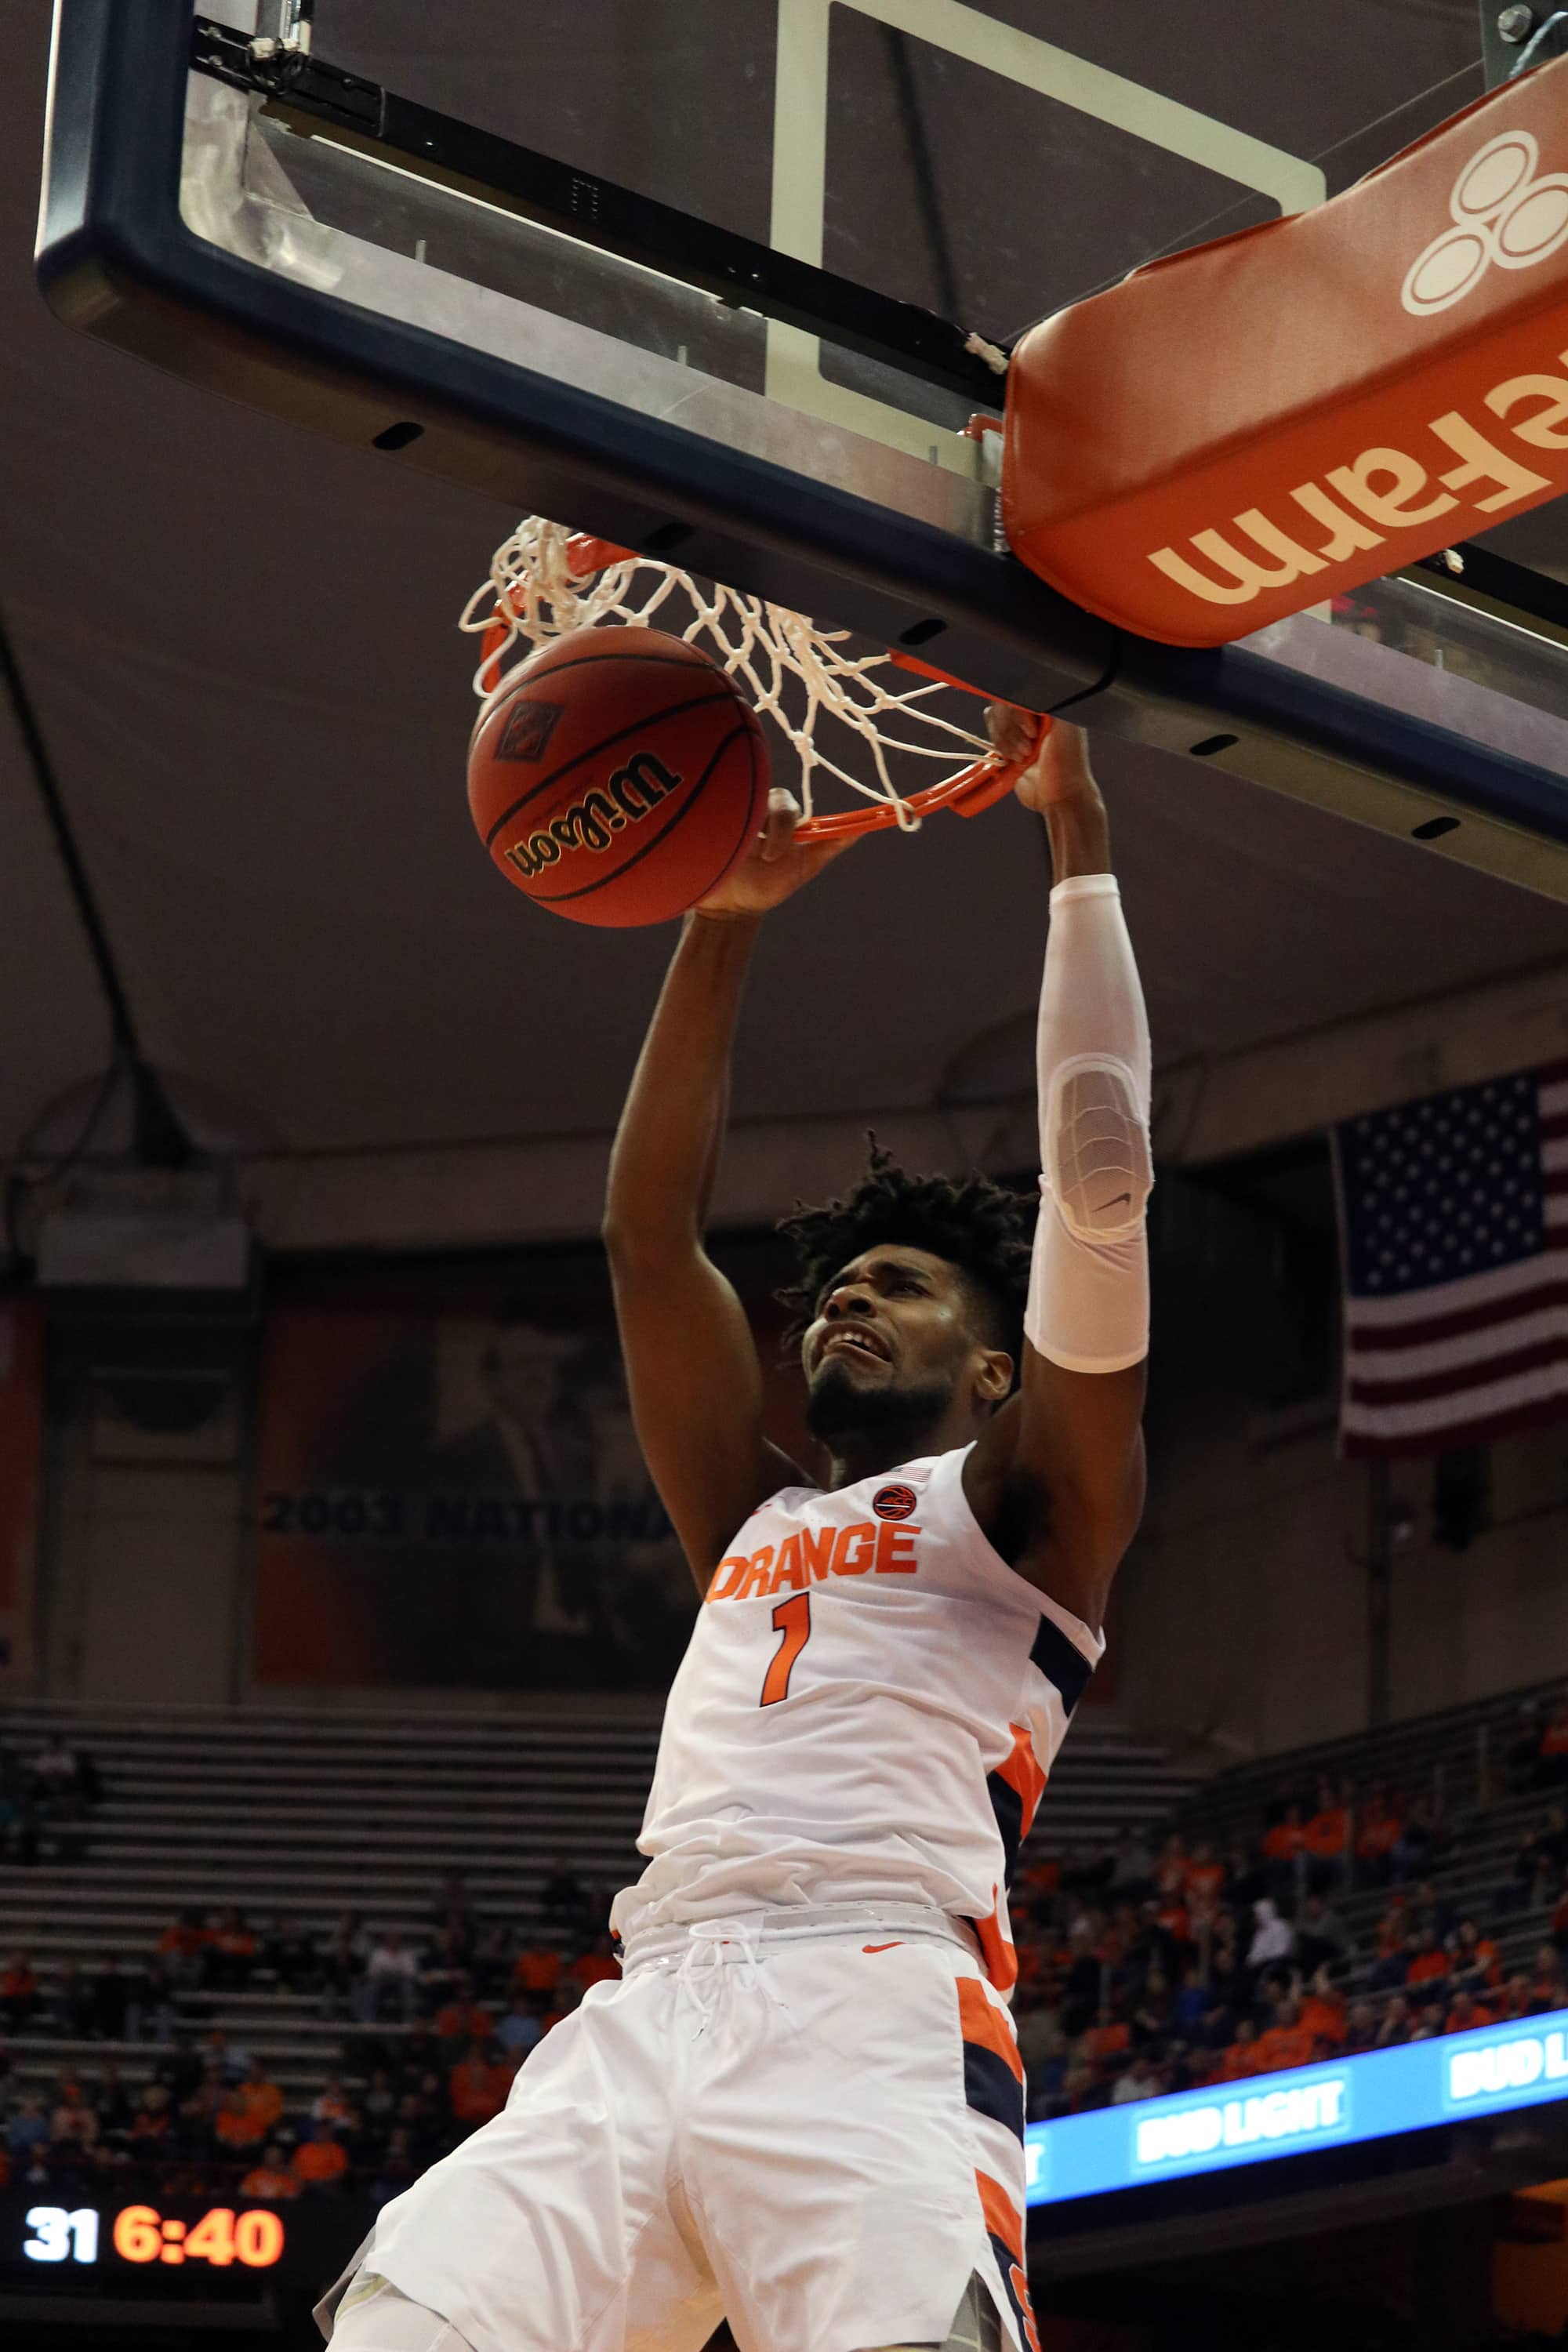 Syracuse University's forward Quincy Guerrier (1), dunks the basketball against Seattle University during the first half of a college basketball game on Nov. 16, 2019. Syracuse beat Seattle with a score of 89 to 67.